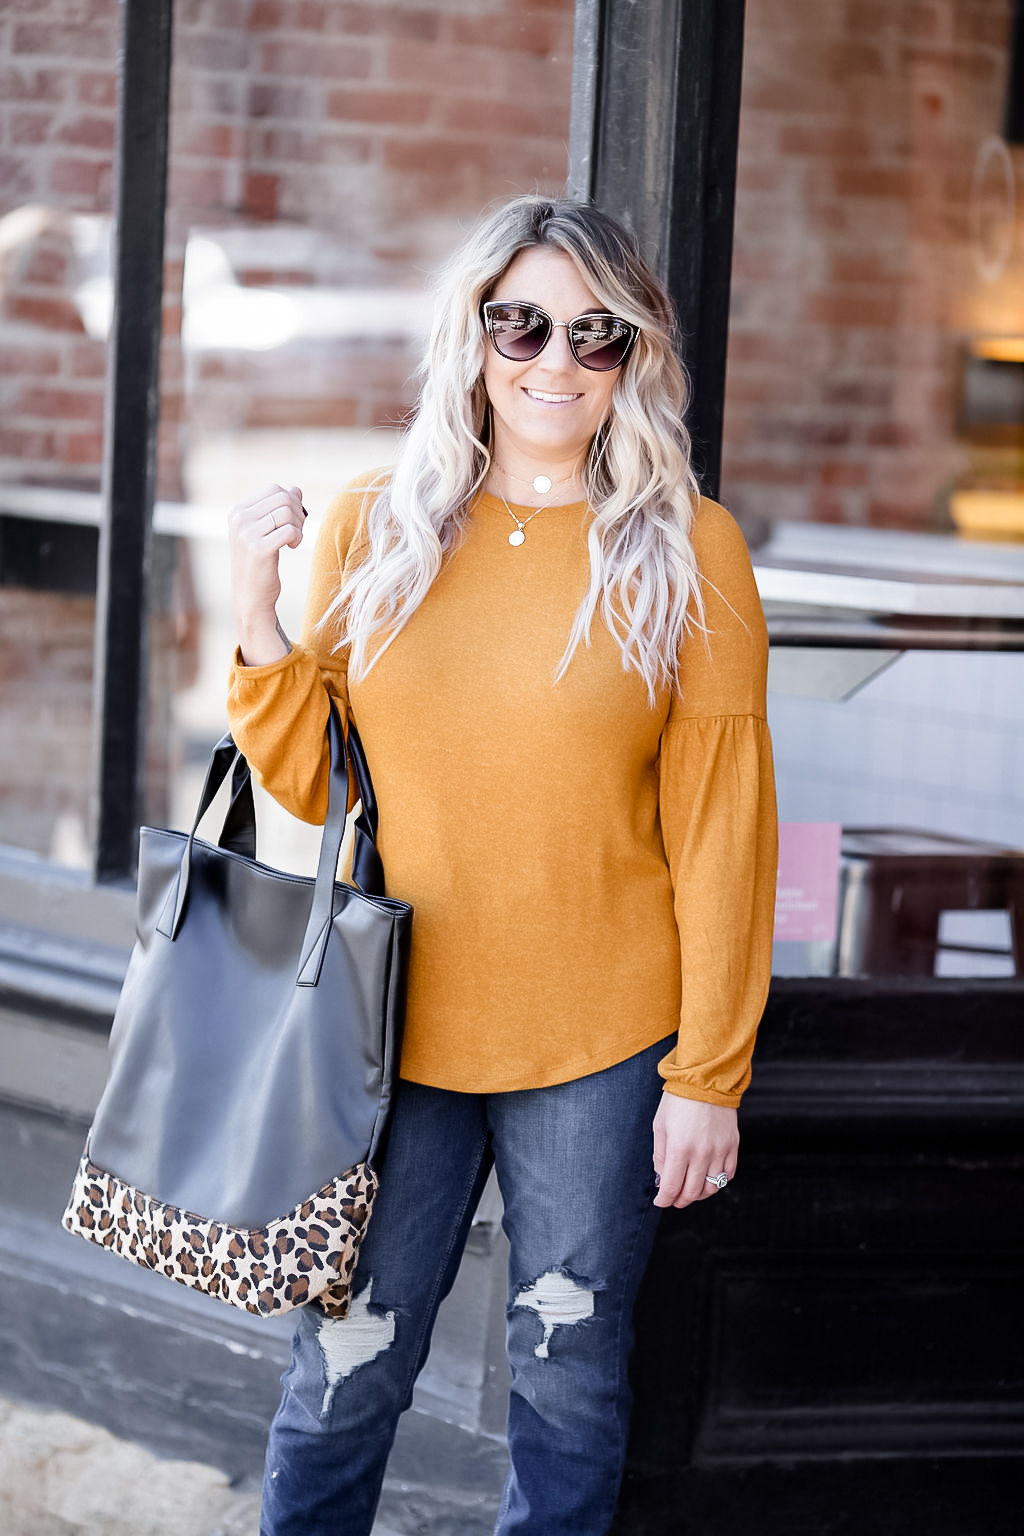 f5a1a76433 Cleveland blogger The Samantha Show shares some fall style inspiration with  a classic balloon sleeve sweater